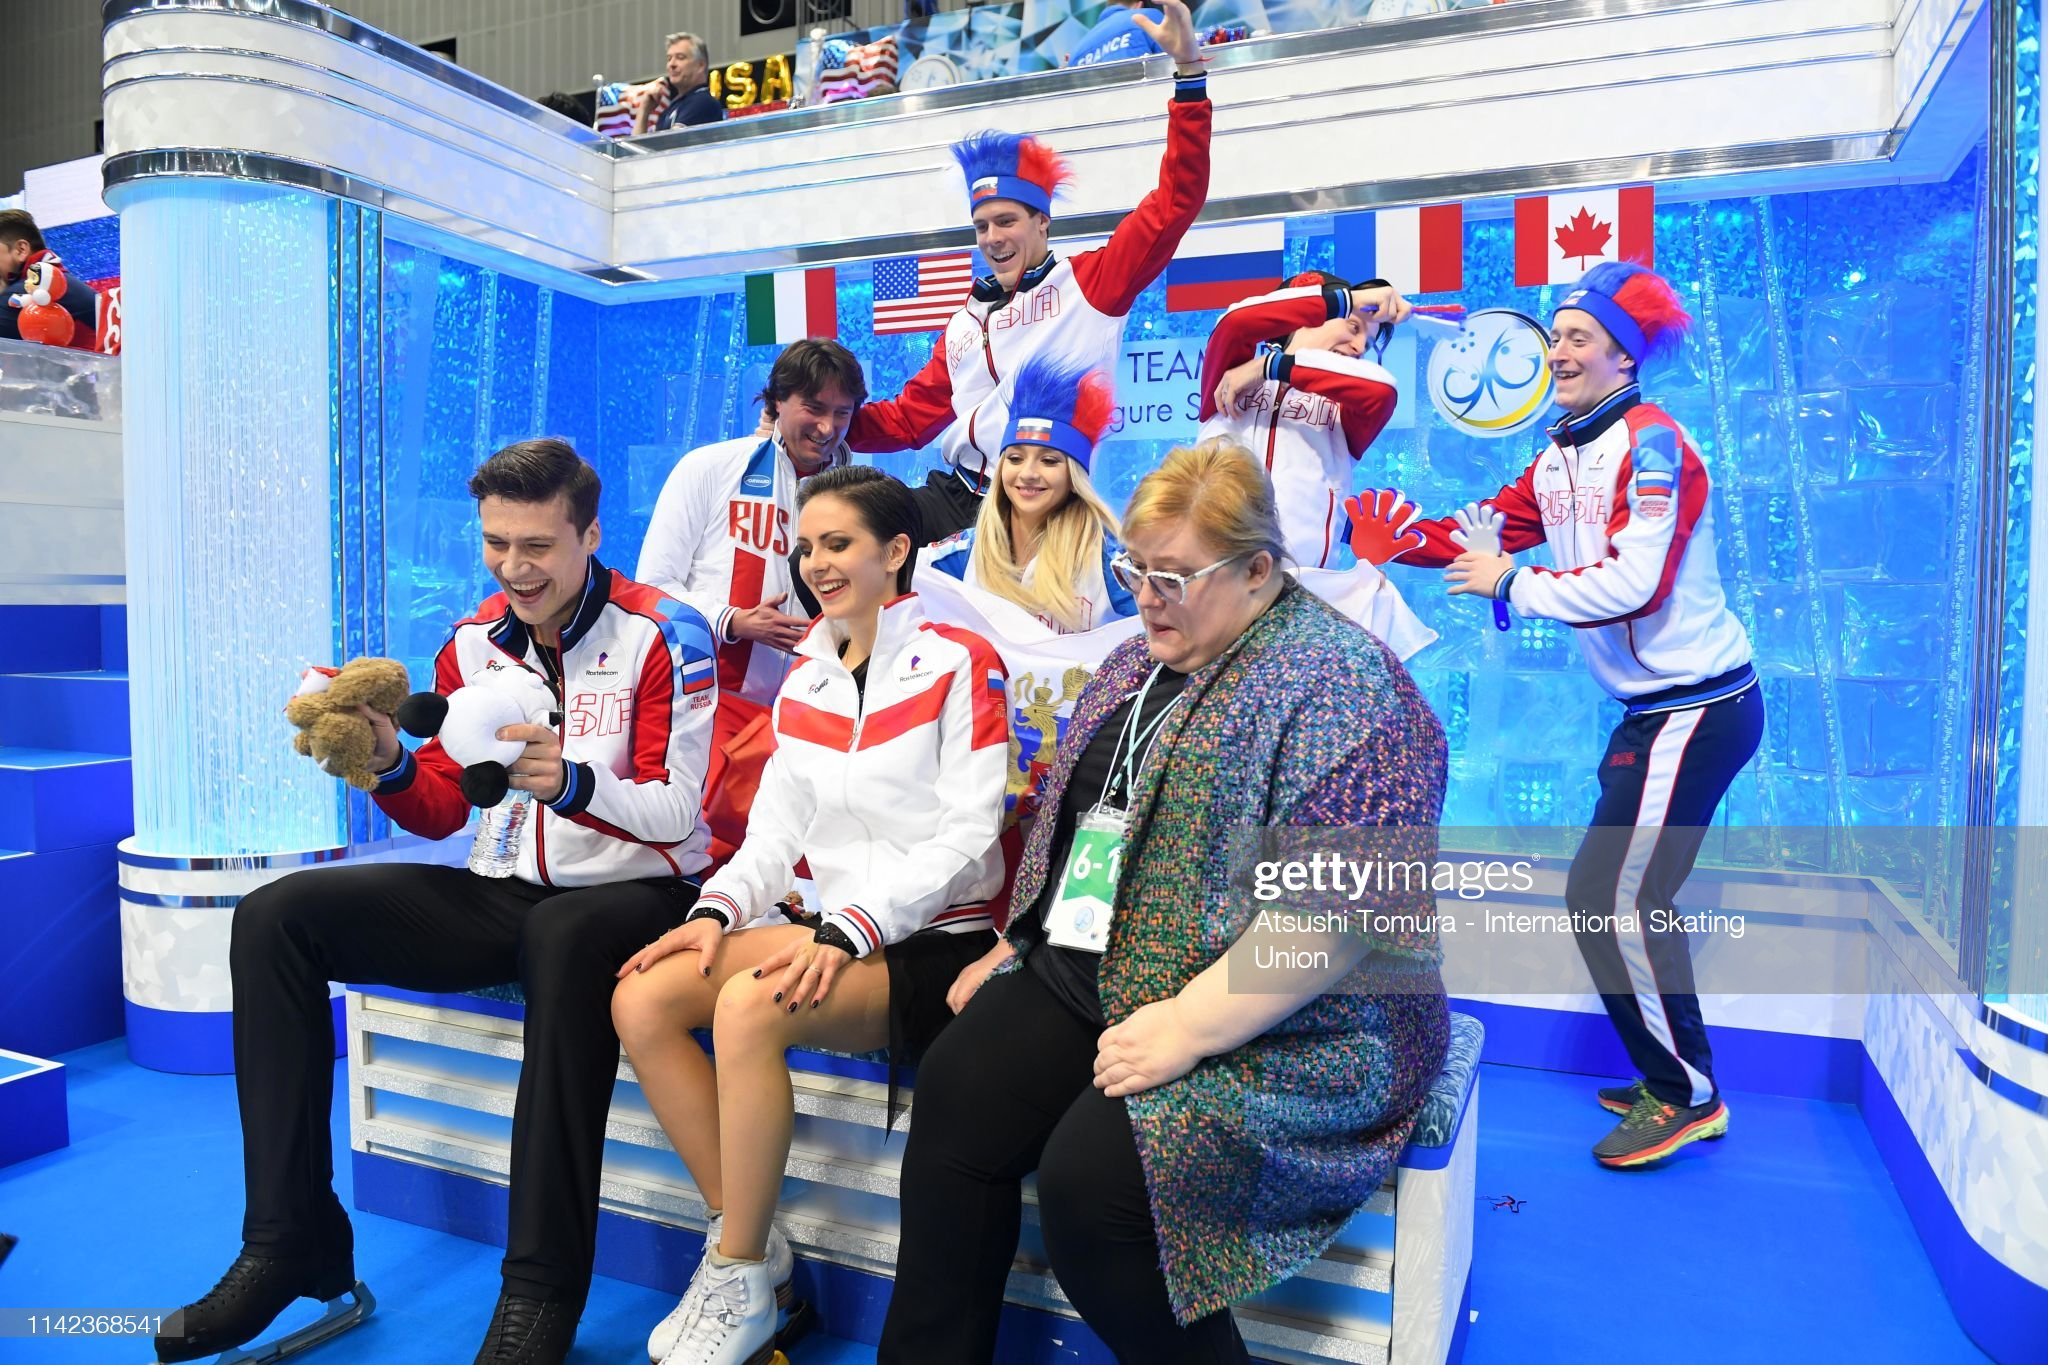 https://media.gettyimages.com/photos/nataliazabiiako-and-alexanderenbert-of-russia-celebrate-their-score-picture-id1142368541?s=2048x2048